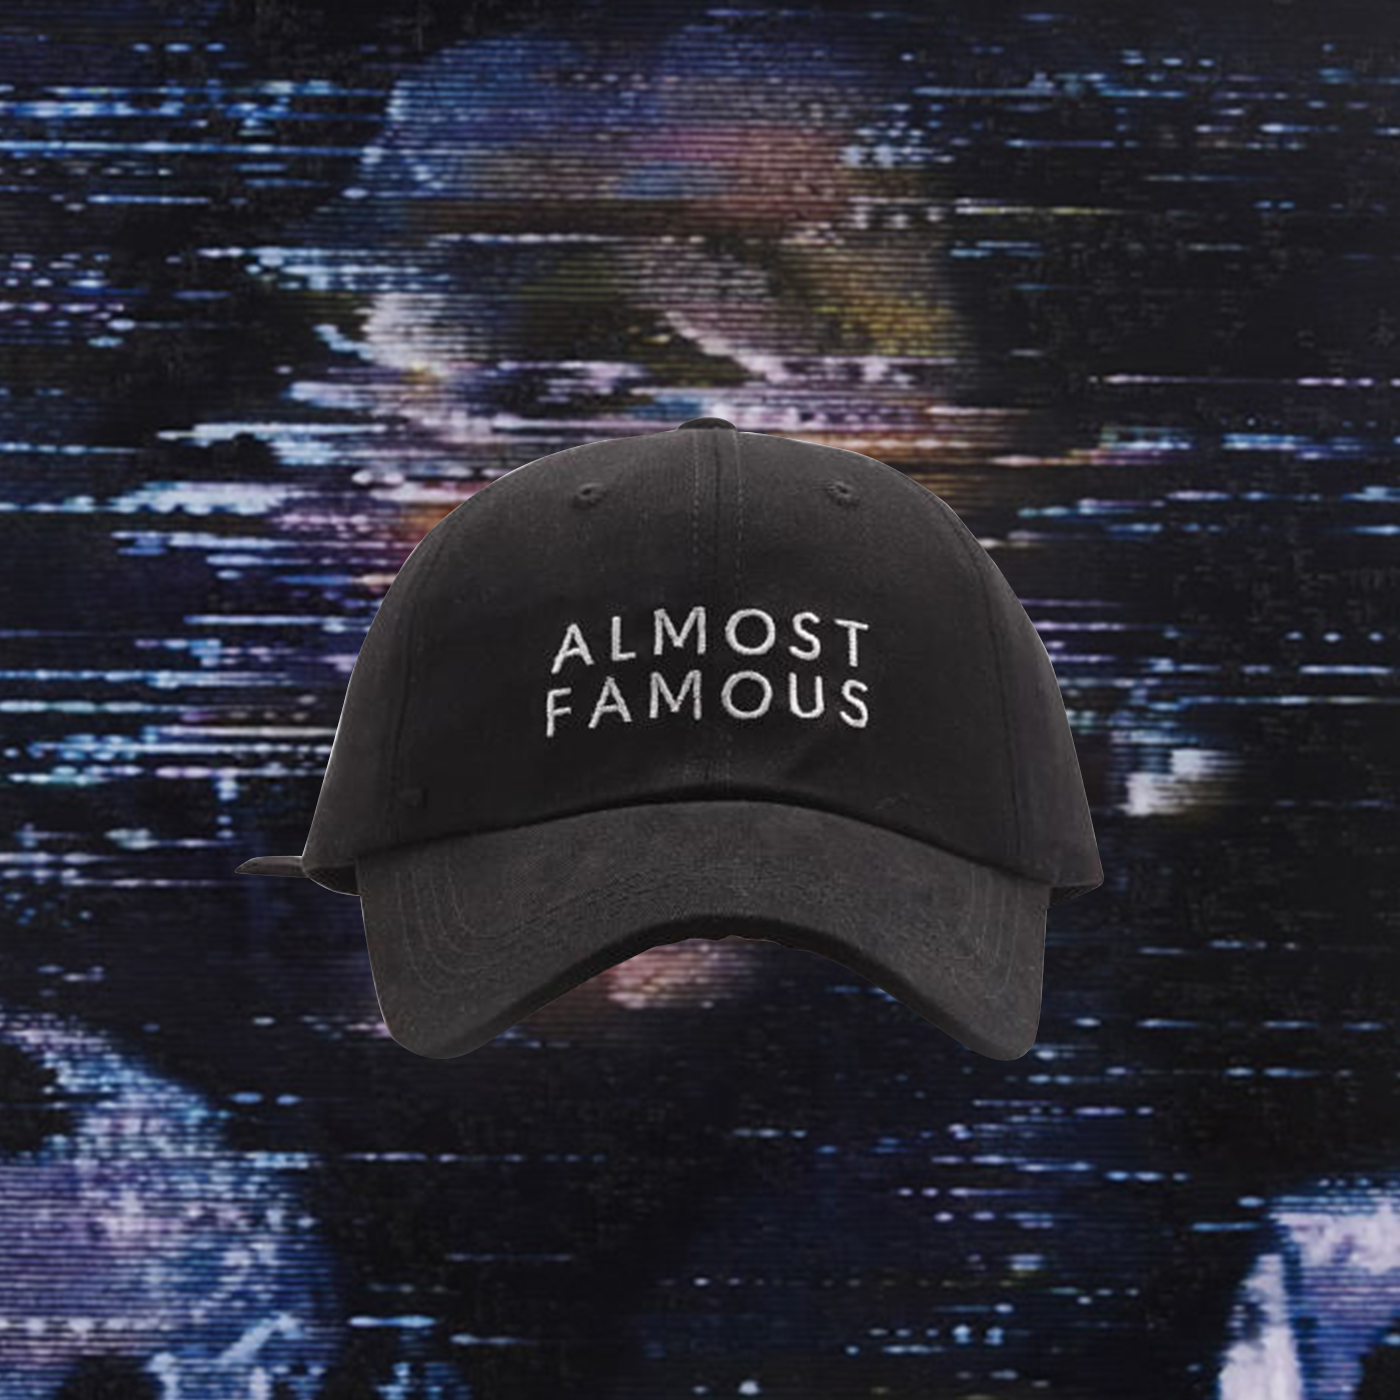 ALMOST FAMOUS BASEBALL CAP BLACK · soldrelax · Online Store Powered ... c7b963e181a